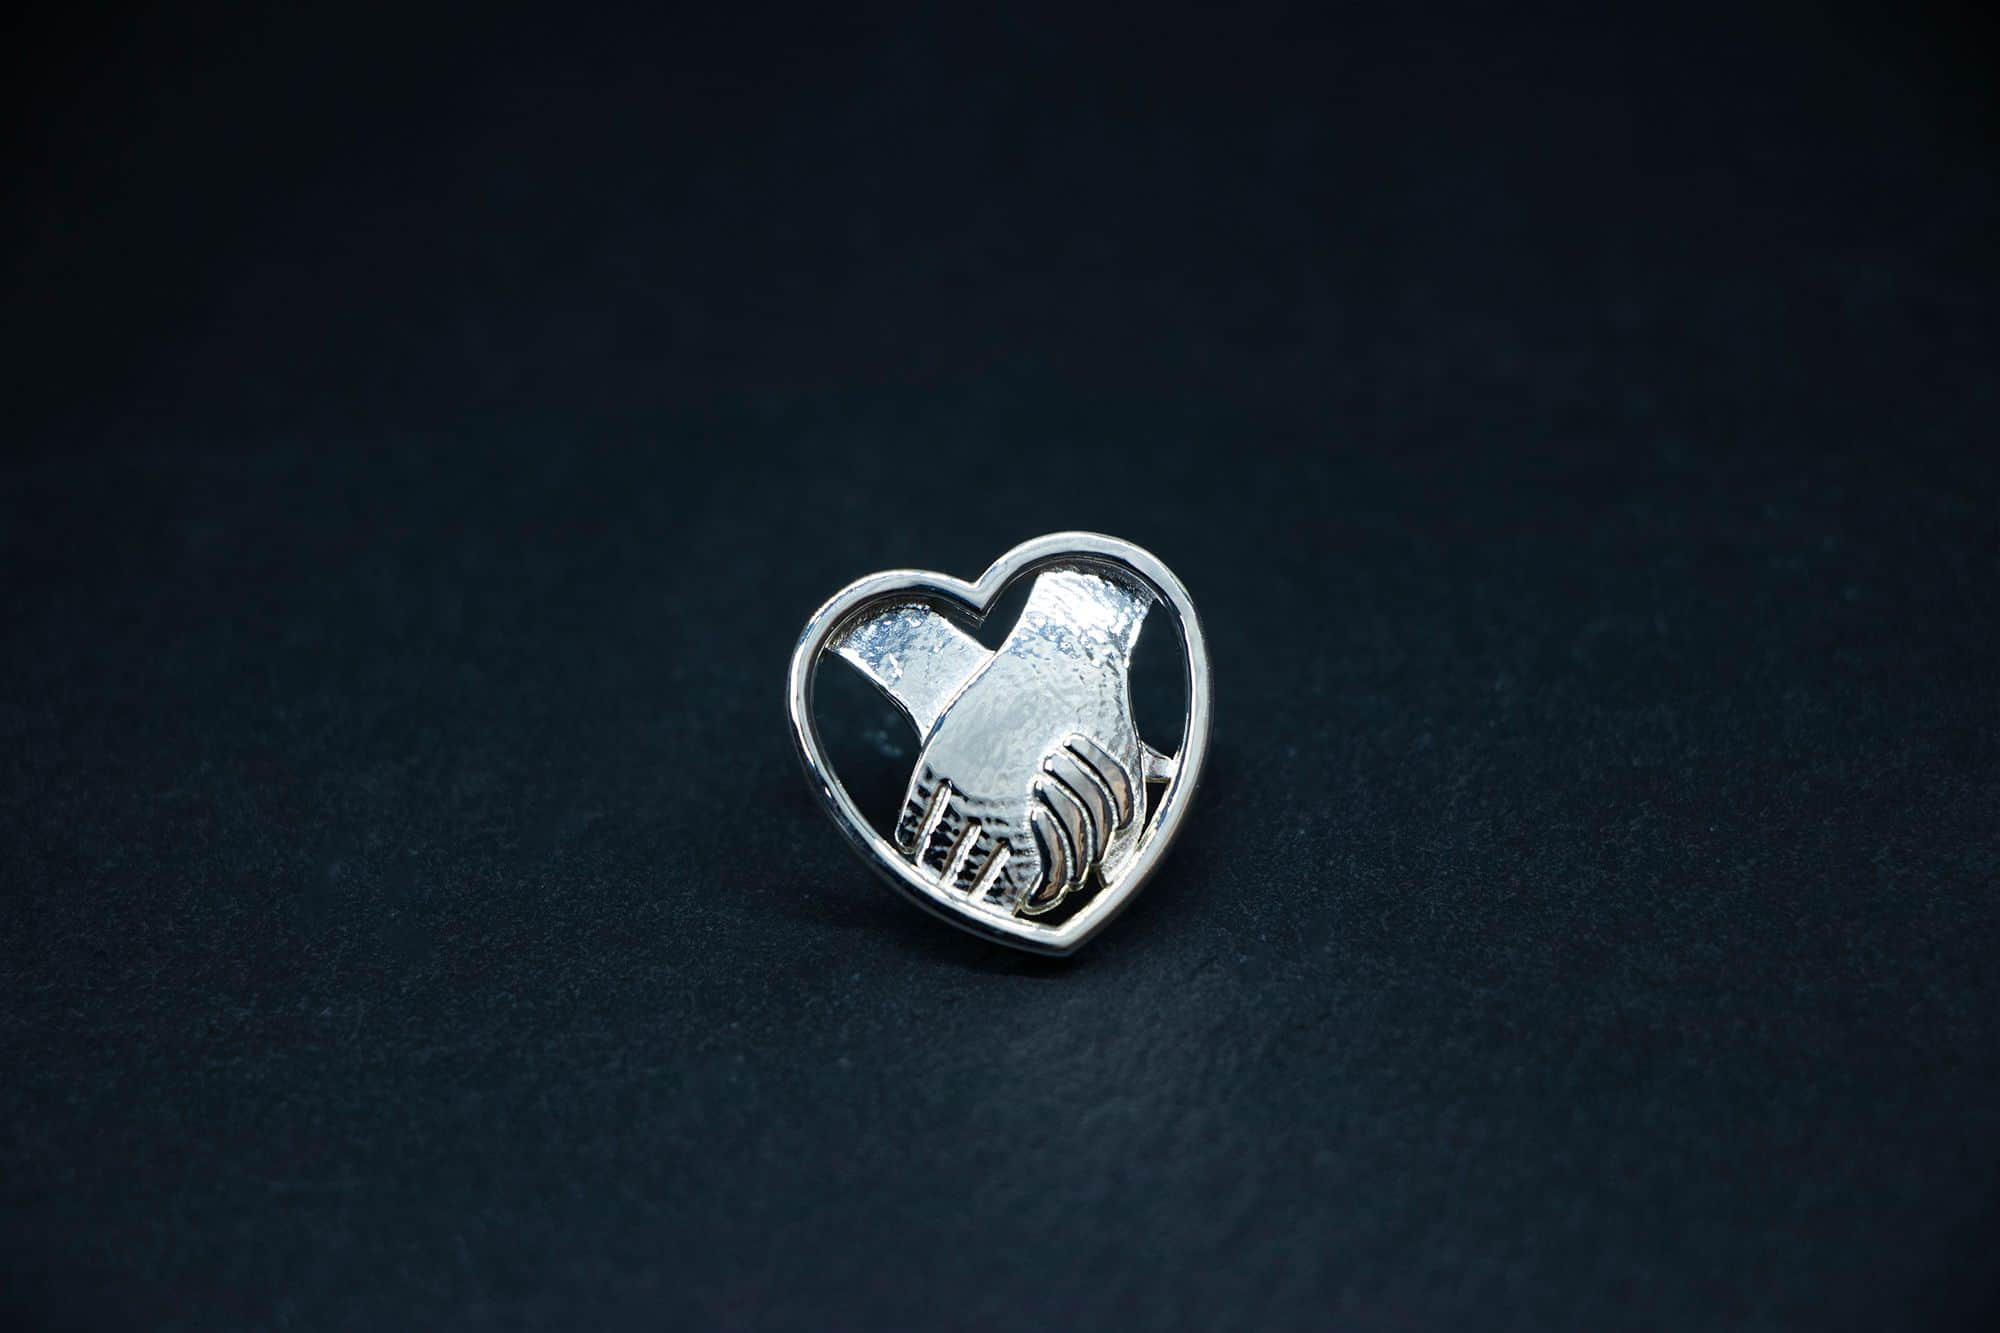 British Academy of Jewellery debuts Pins of Praise jewellery in support of NHS